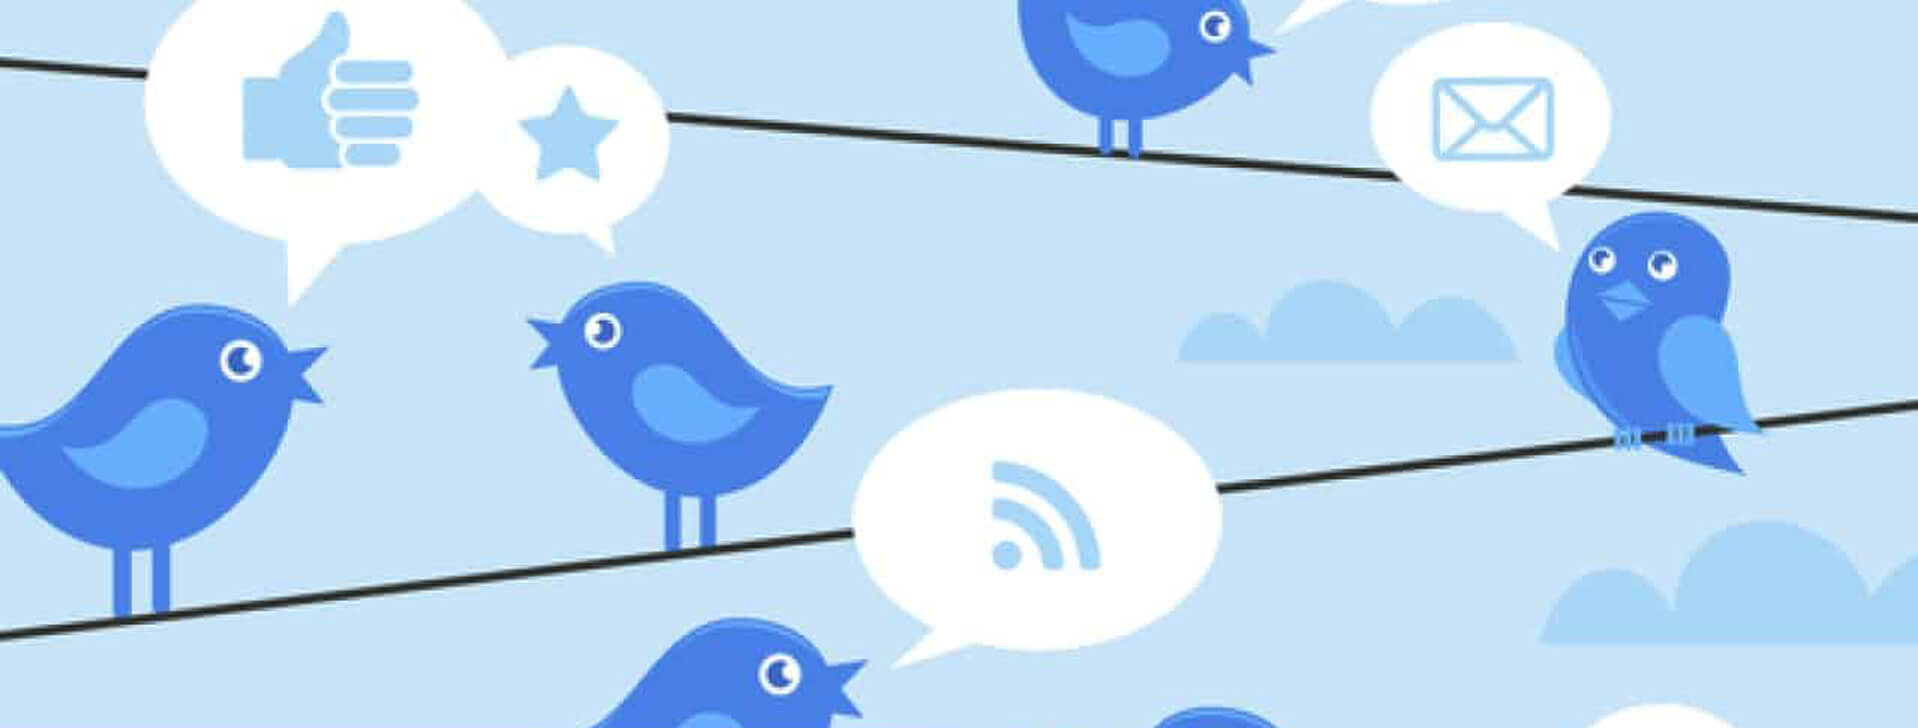 Using twitter to create a buzz around a brand blog